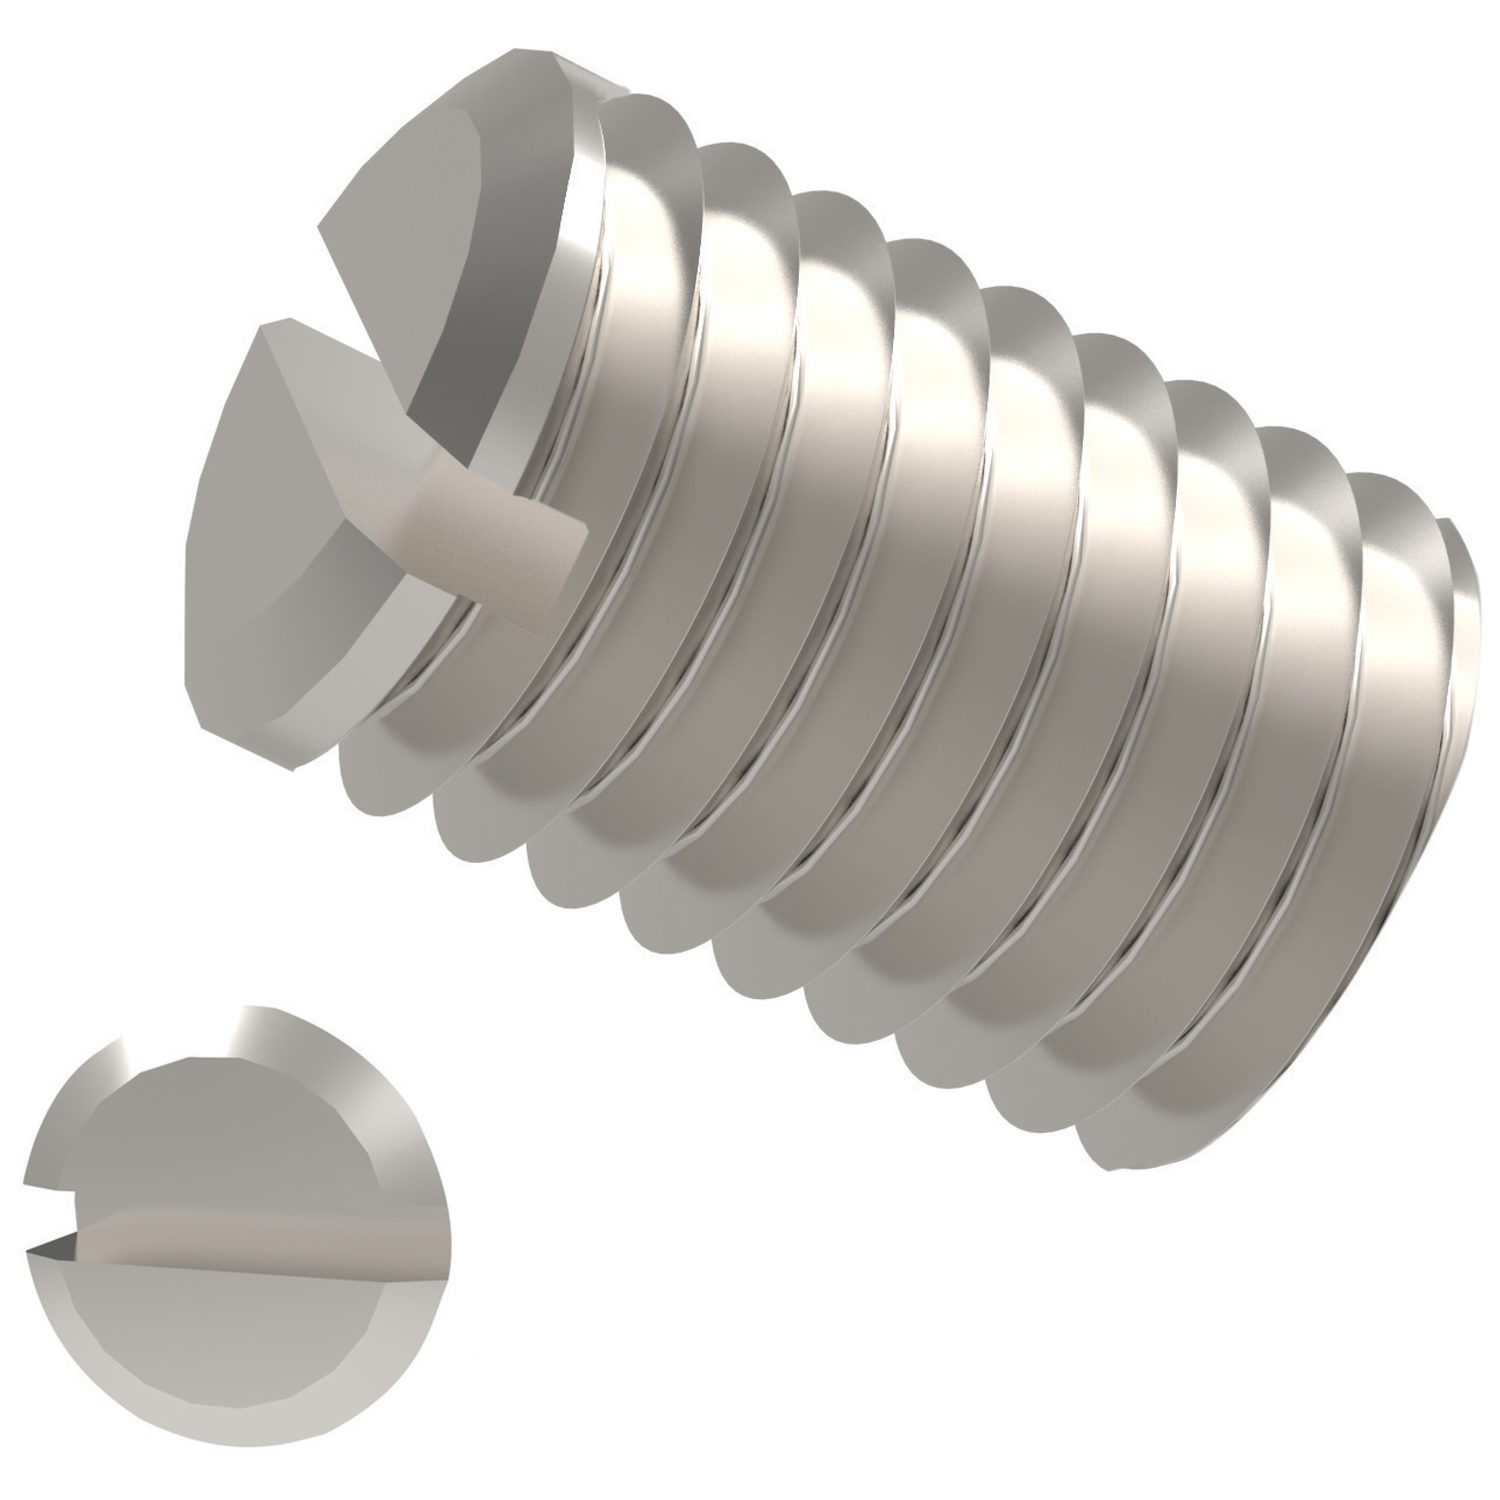 Slotted Set Screws Cup Point A2 Stainless Steel. To DIN 438, cup point.